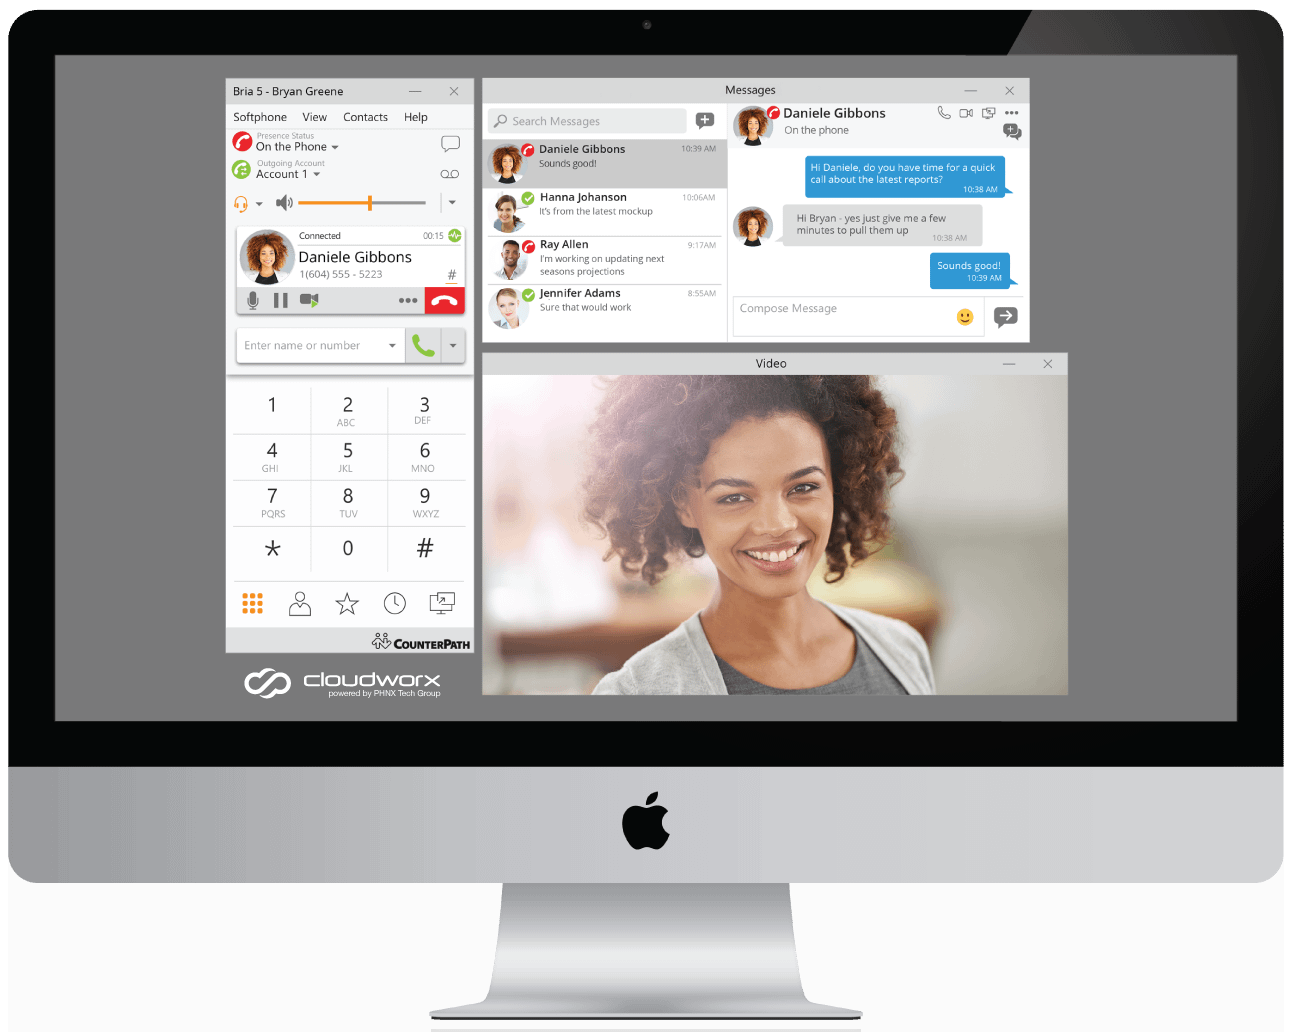 Bria-MAC-Desktop-Unified-Communications